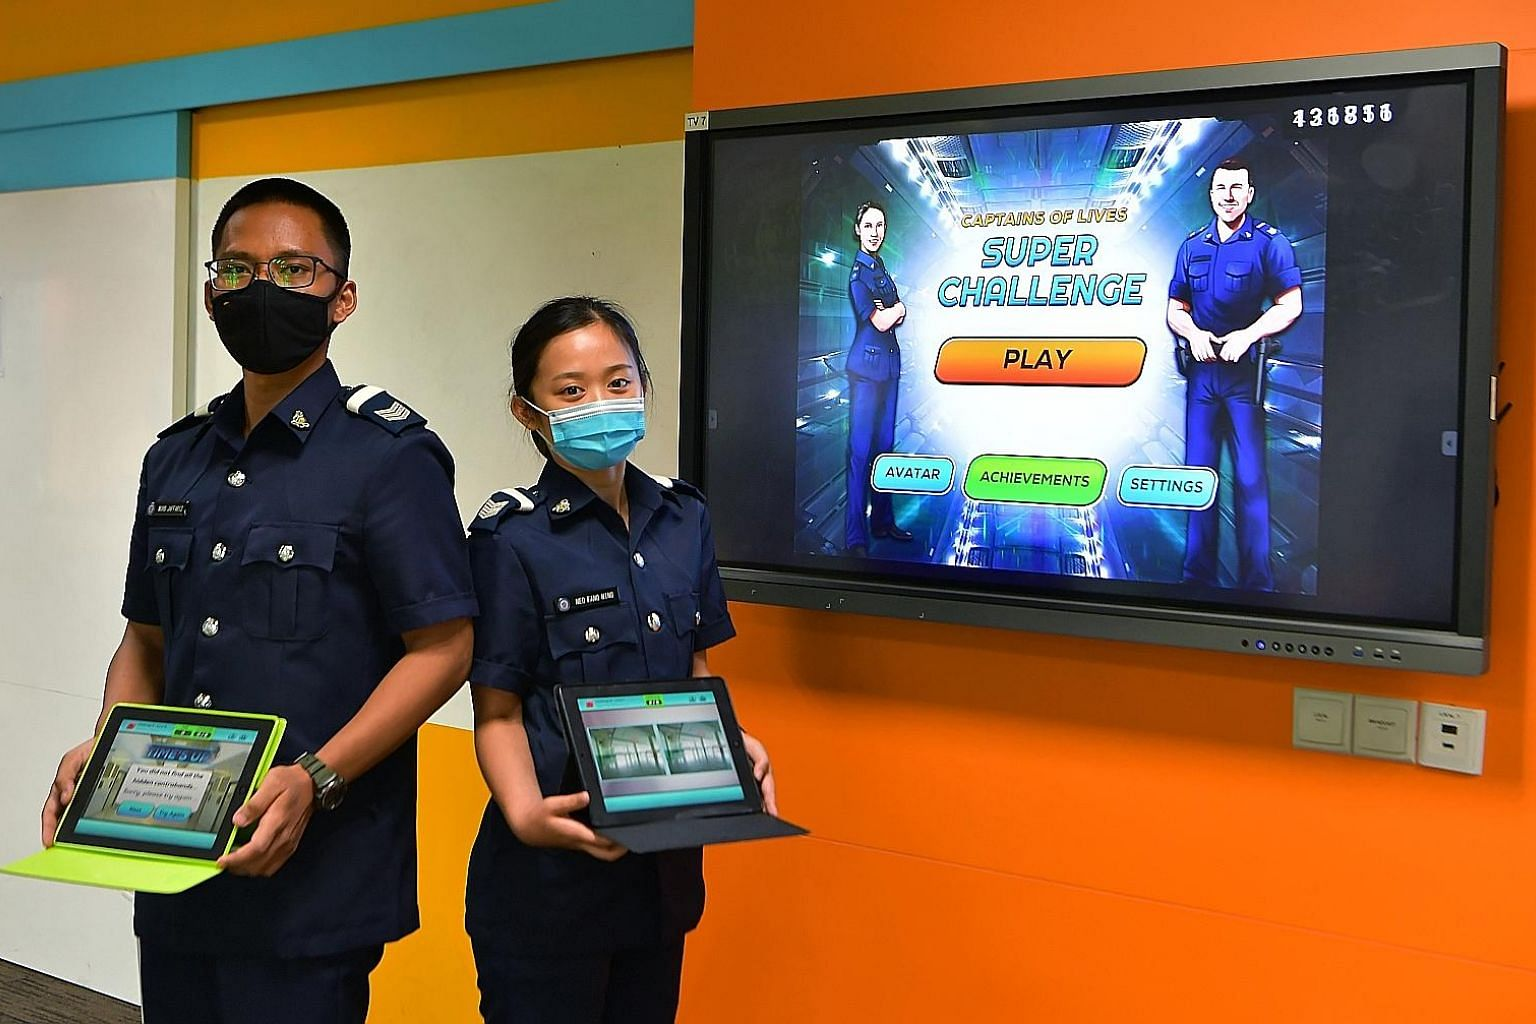 Sergeants Muhammad Jaffariz Siddiq Ahmad Azeri and Neo Fang Ning are among the first group of trainees in the prison officer course to use the gaming-style Mobile Interactive Training Application. The app - which trainees can access on their Singapor